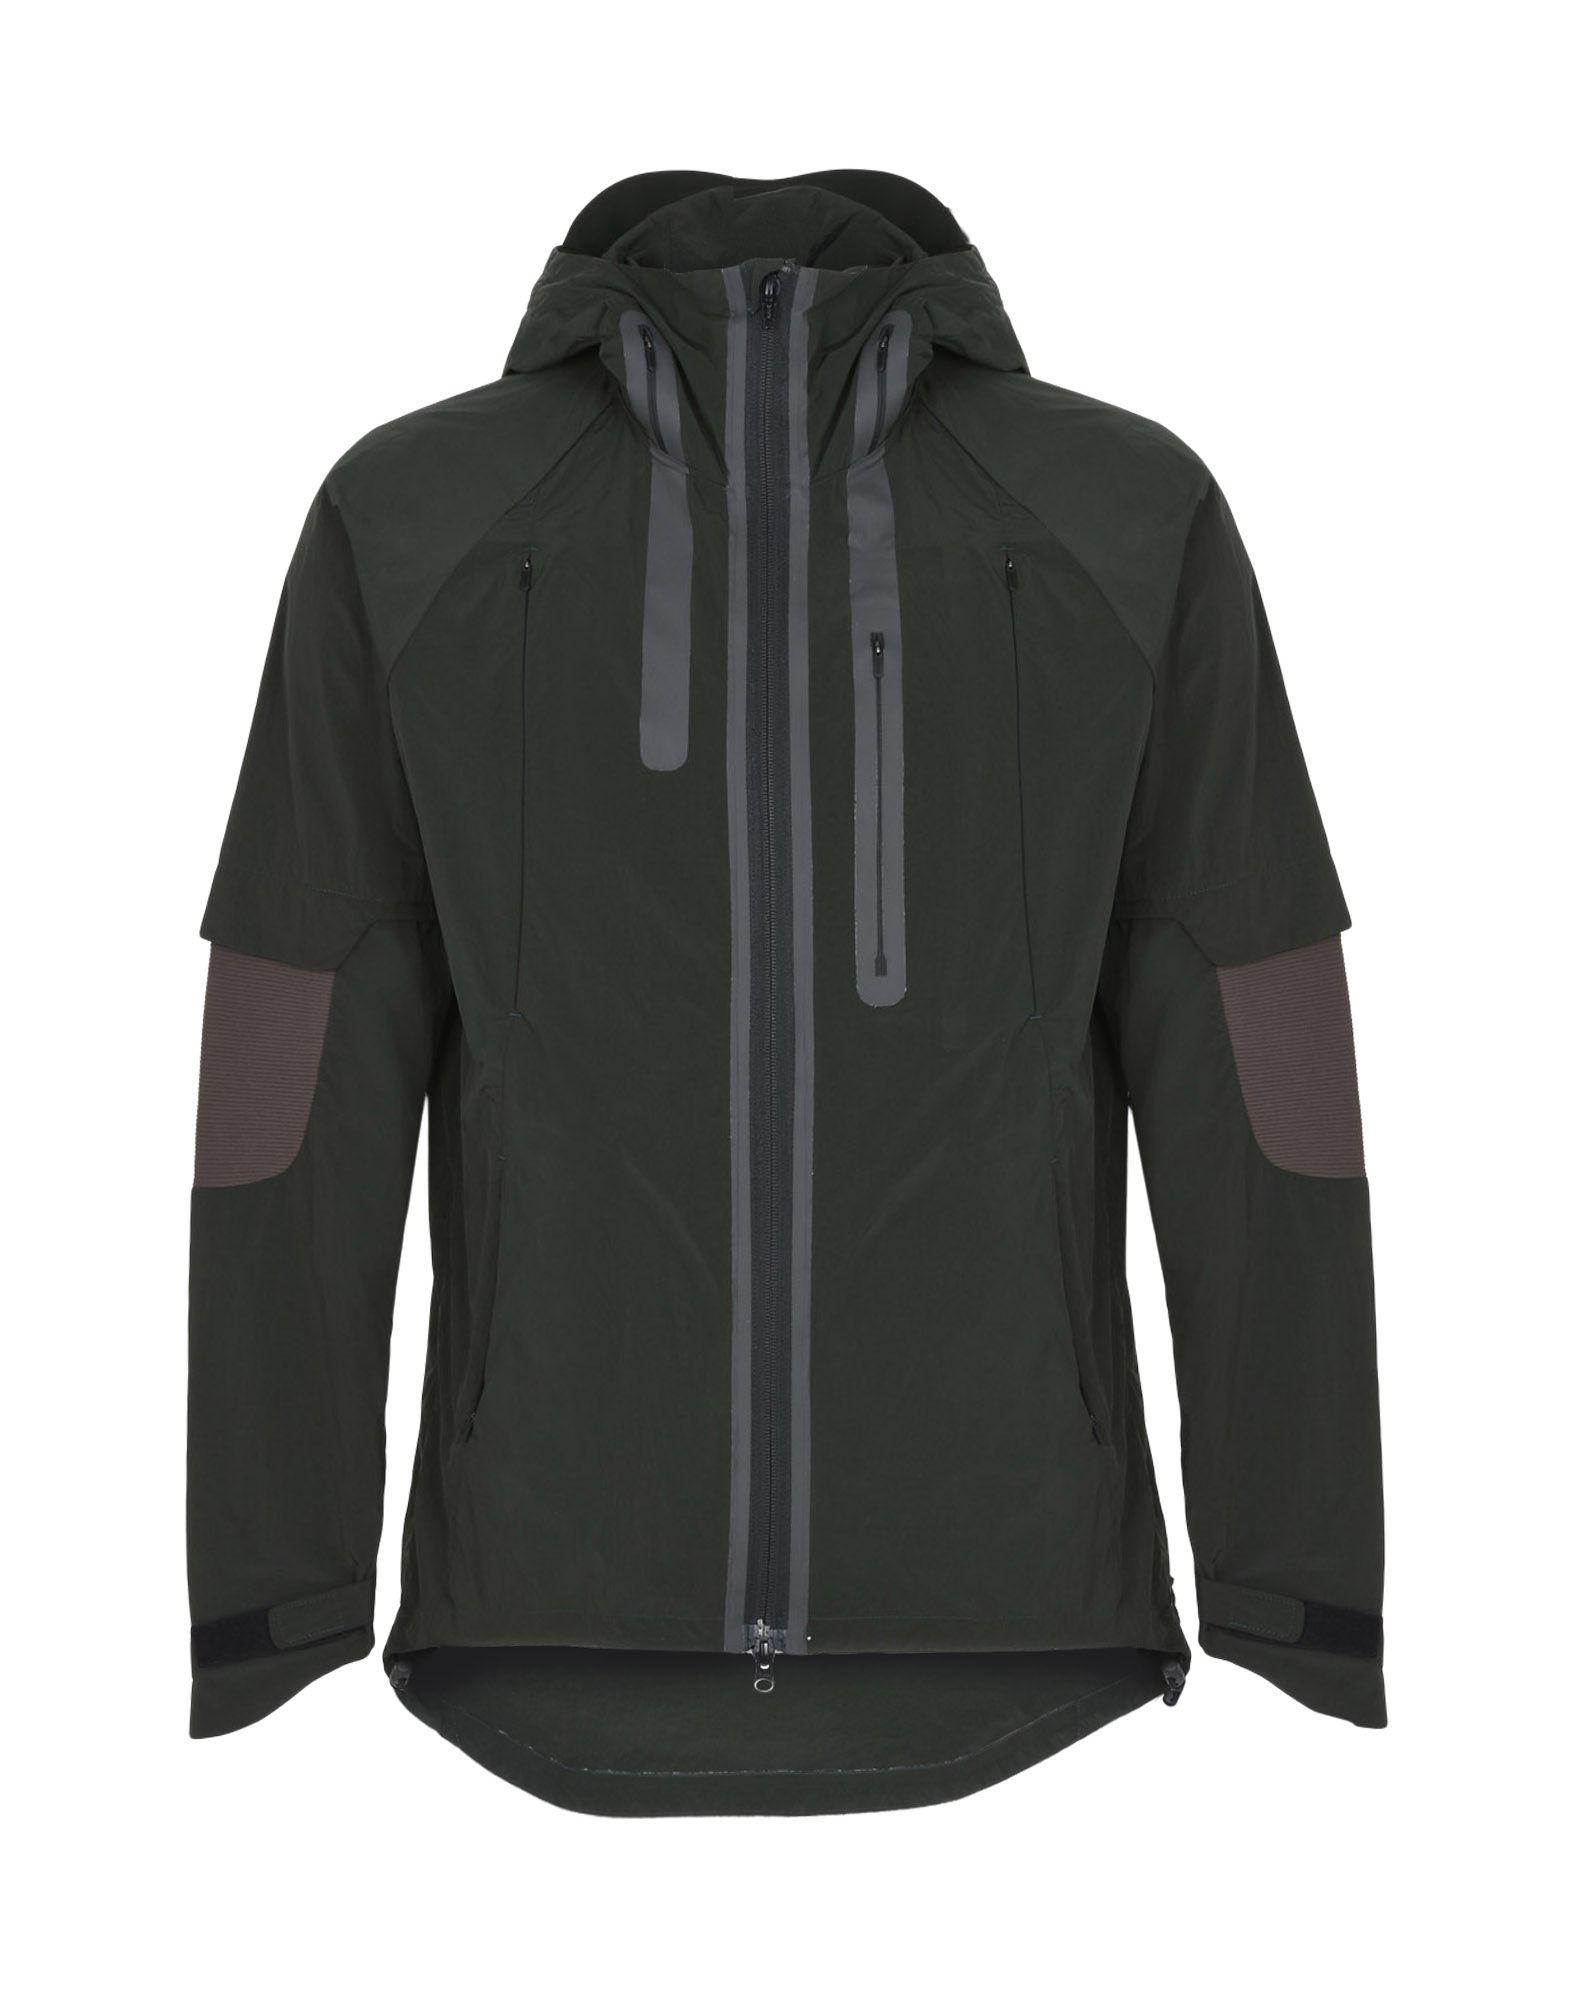 Y 3 HOODED JACKET Jackets for Men | Adidas Y-3 Official Store